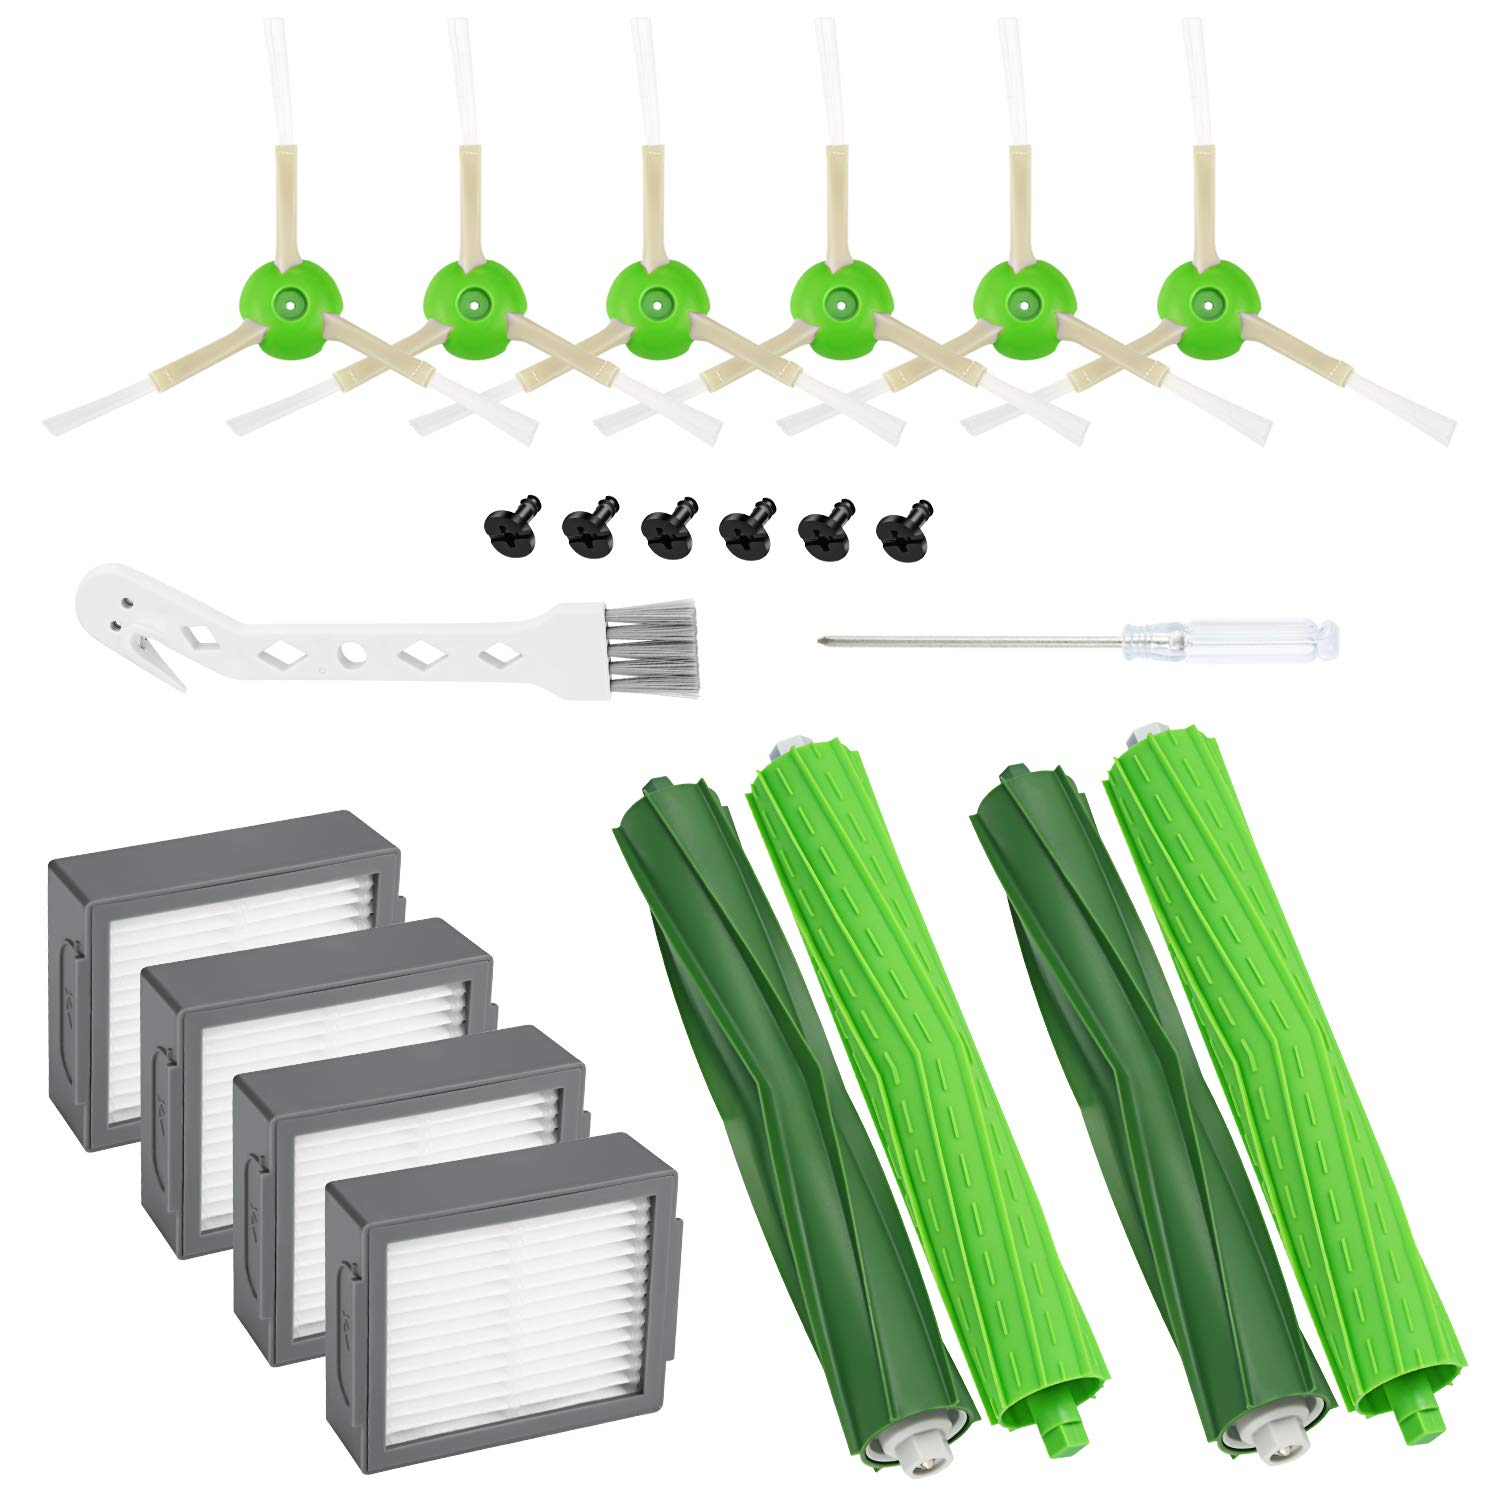 6 Side Brushes 4 Filters 2 Set Multi-Surface Rubber Brushes Cabiclean 14 Pack Replacement Accessory Kit Compatible iRobot Roomba i Series i7 i7+